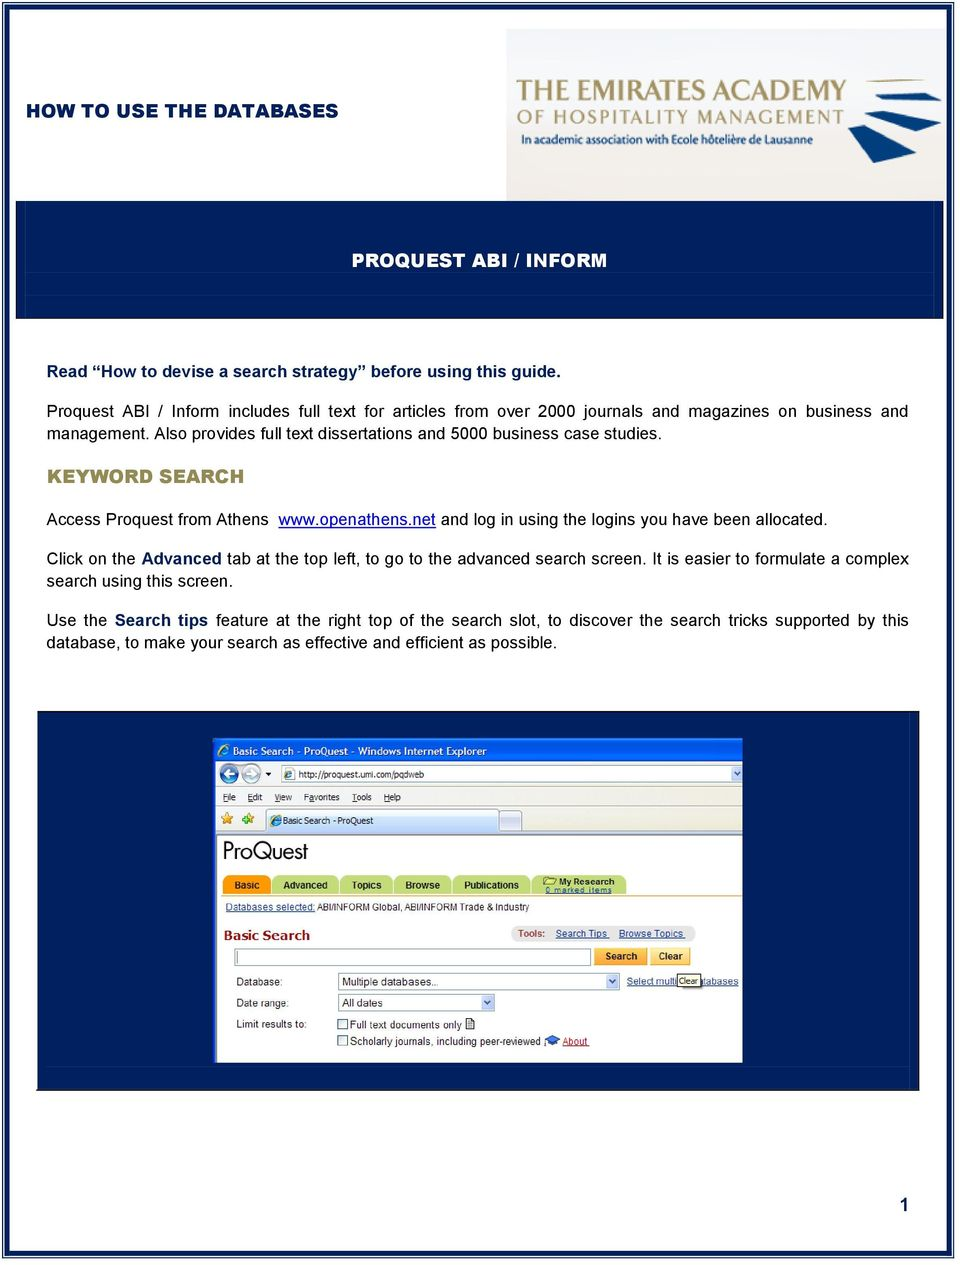 Proquest dissertation search www.search.proquest.com/index.html